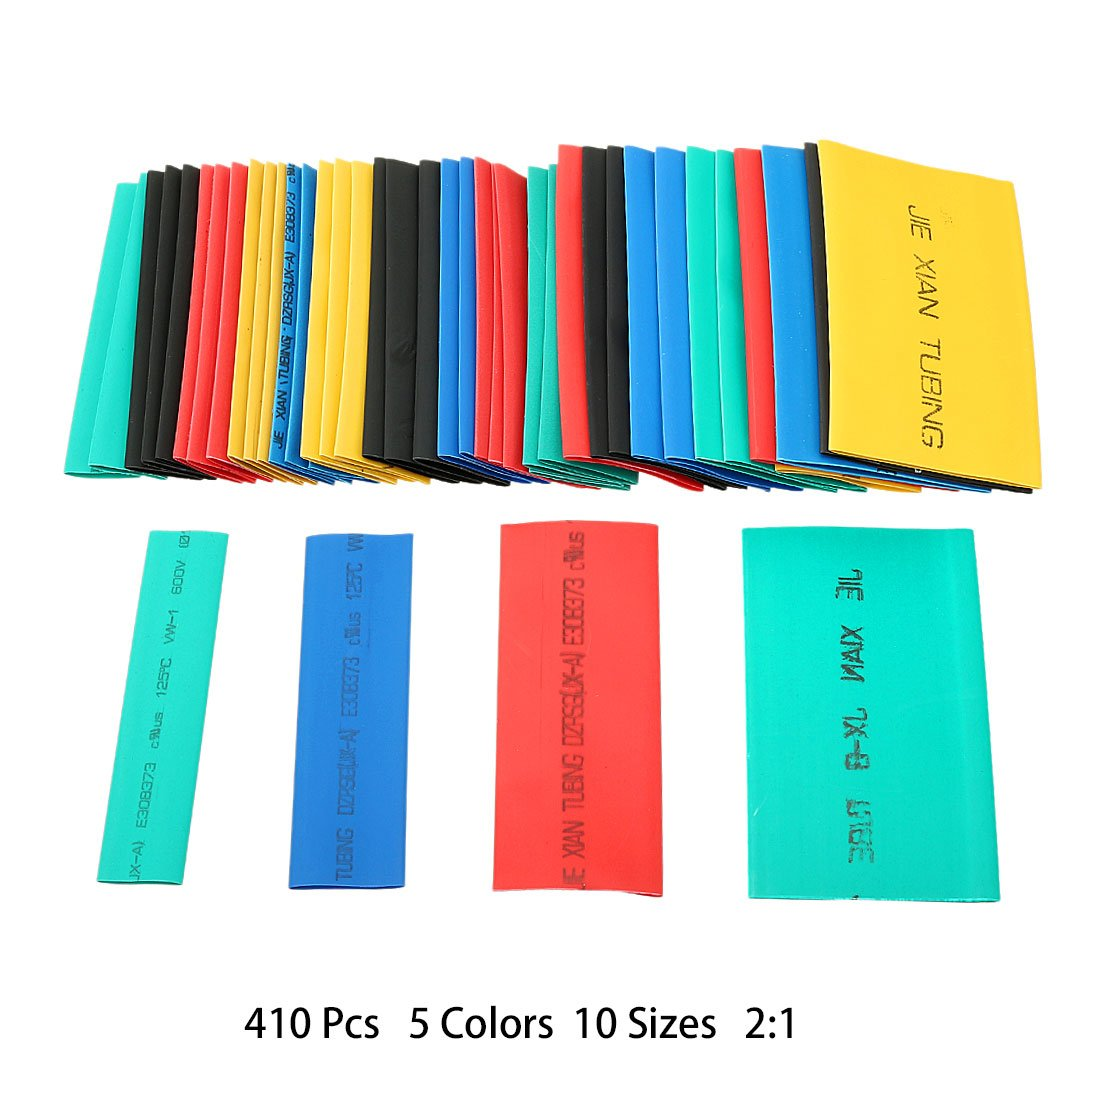 uxcell 410Pcs 2:1 Heat Shrink Tubing Tube Sleeving Wire Cable 5 Color 10 Sizes by uxcell (Image #2)